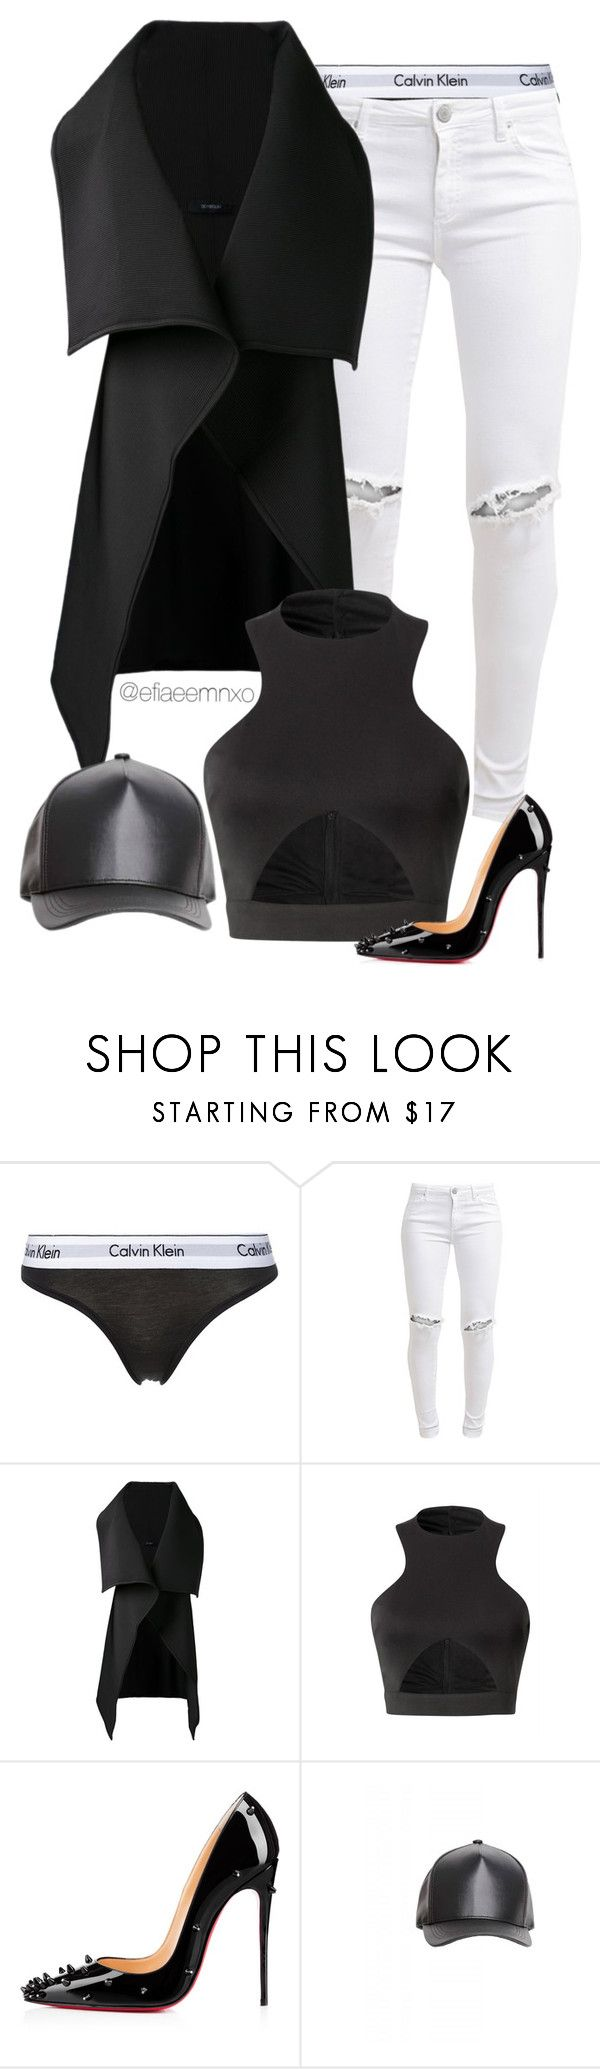 """""""Escape"""" by efiaeemnxo ❤ liked on Polyvore featuring Calvin Klein Underwear, FiveUnits, Sid Neigum, Christian Louboutin, women's clothing, women, female, woman, misses and juniors"""